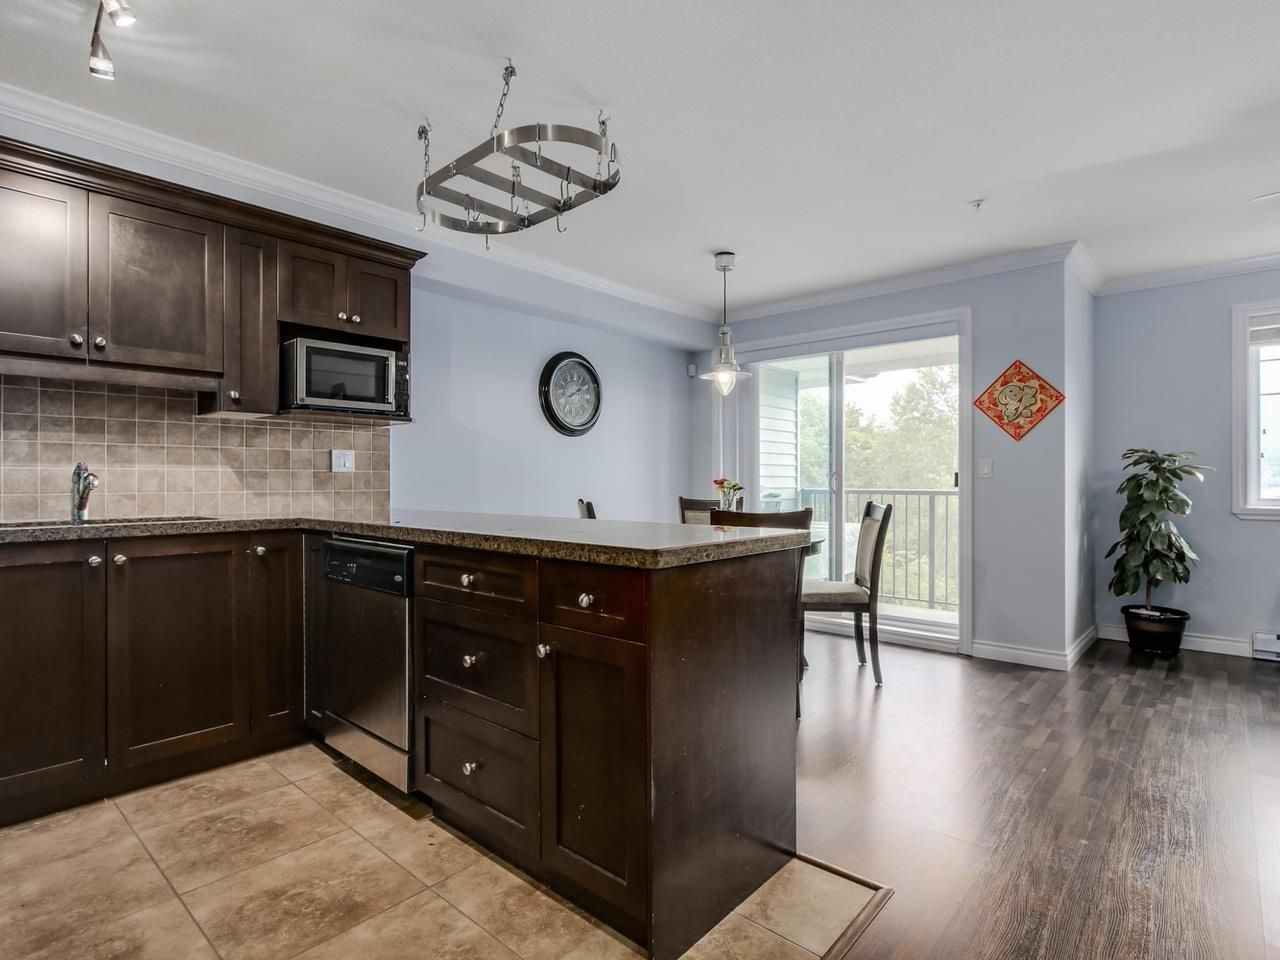 """Photo 7: Photos: 10 11255 132 Street in Surrey: Bridgeview Townhouse for sale in """"FRASERVIEW TERRACE"""" (North Surrey)  : MLS®# R2086692"""